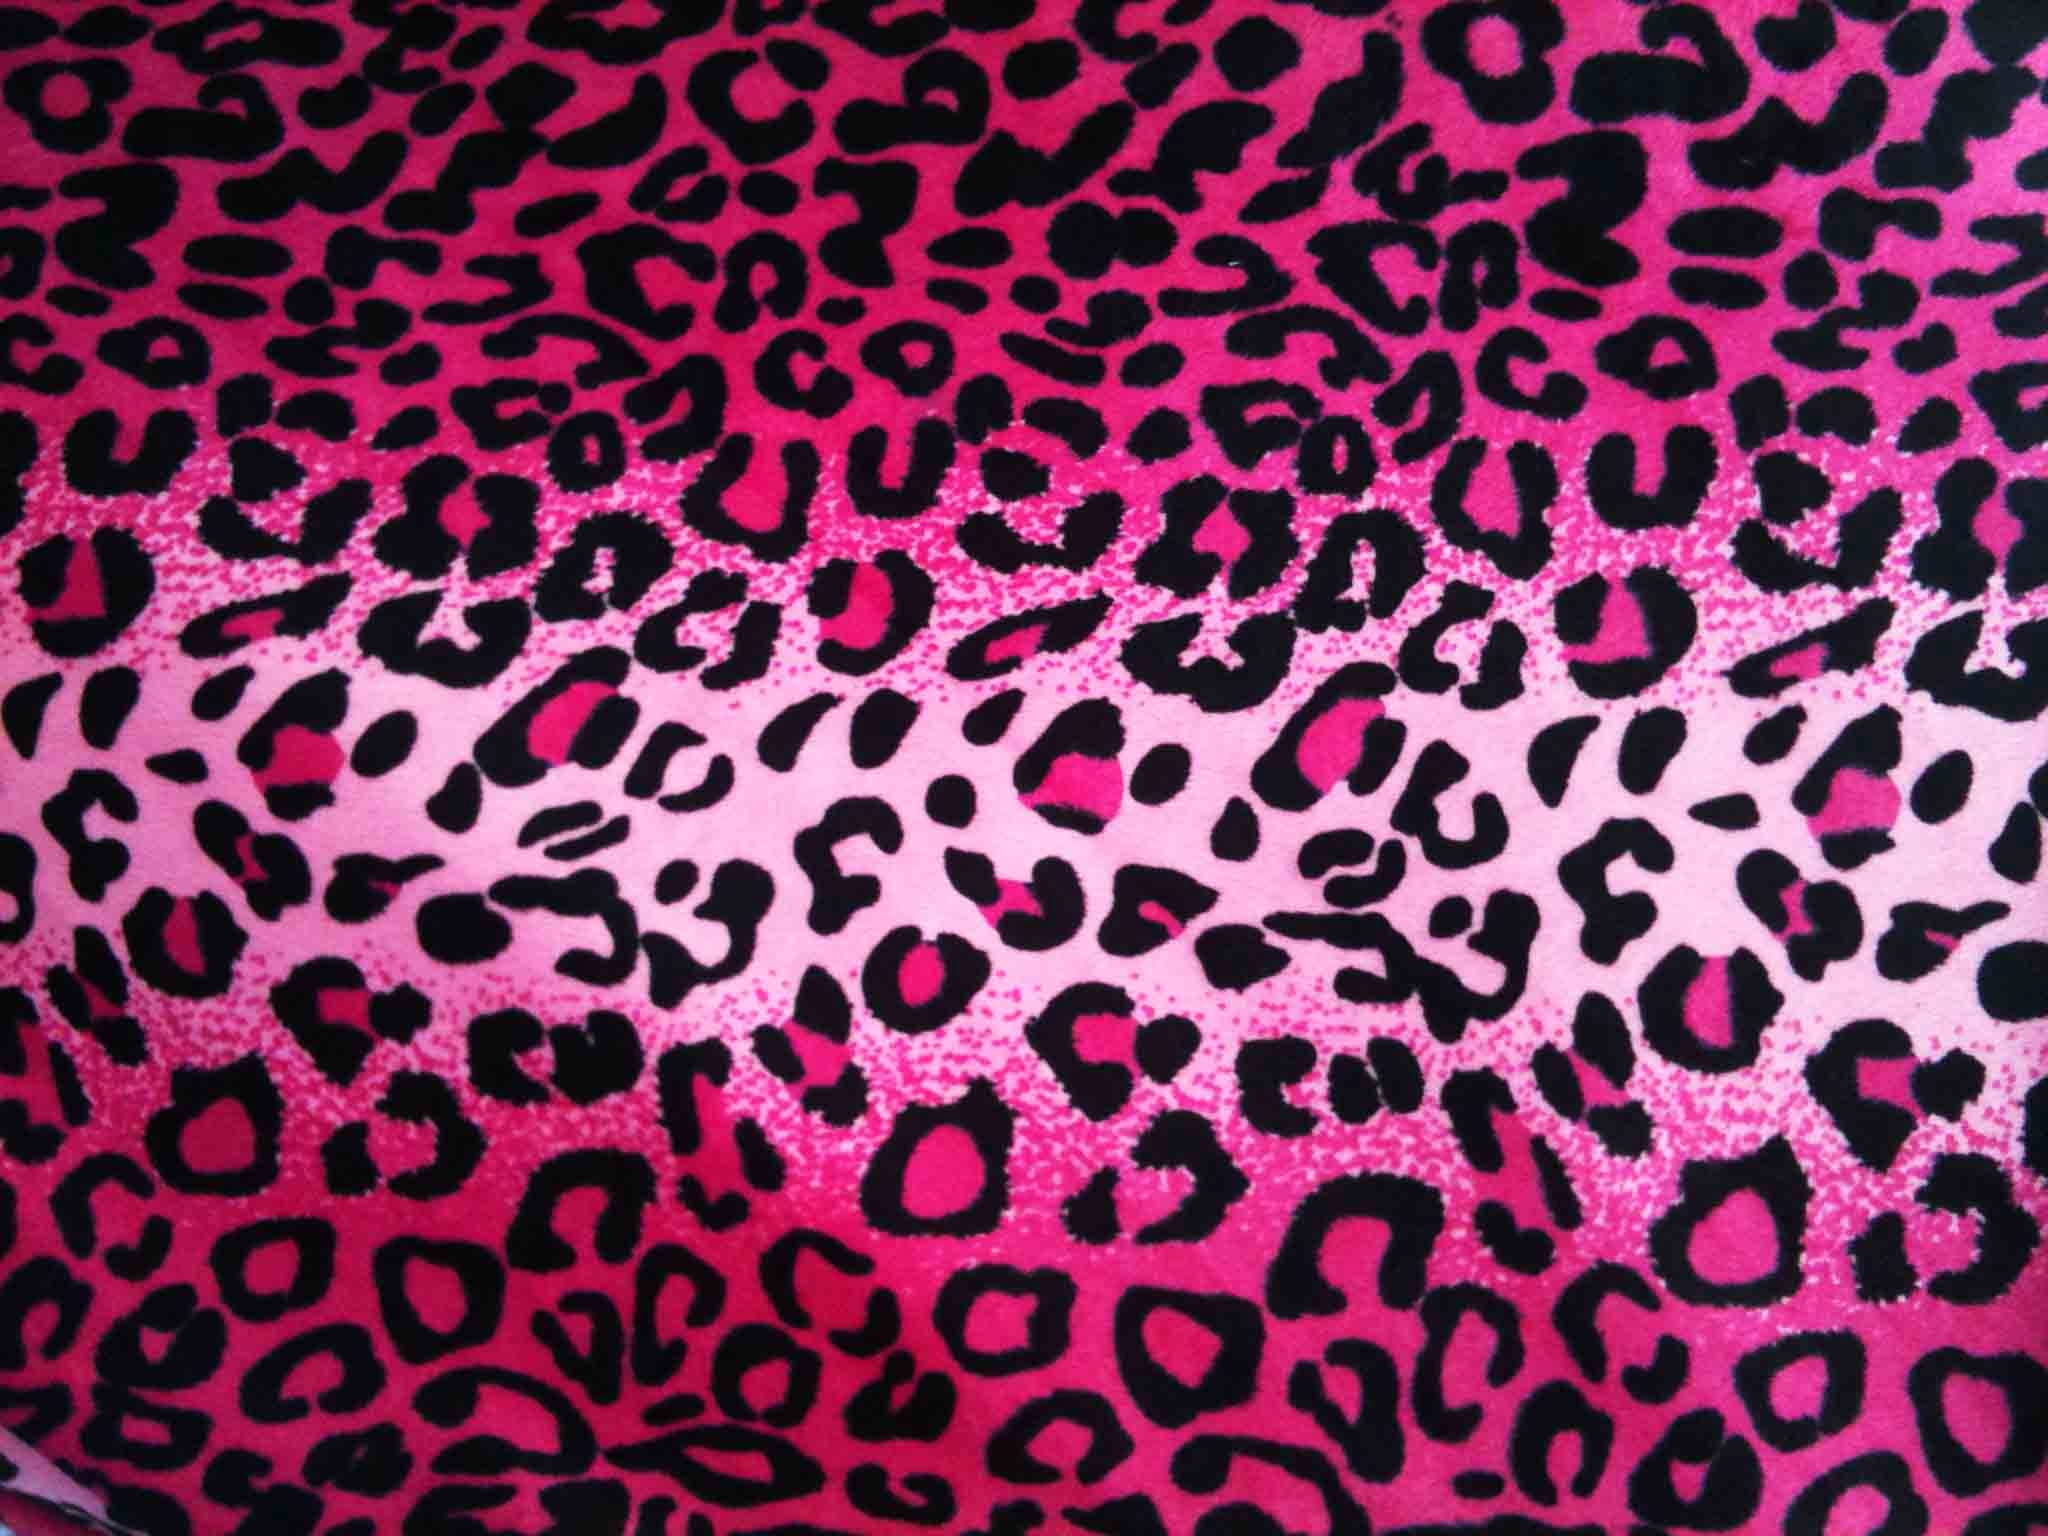 Cool Collections Ofleopard Print Wallpapers Hd For Desktop Laptop And Mobiles Here You Can More Than 5 Million Photography Uploaded